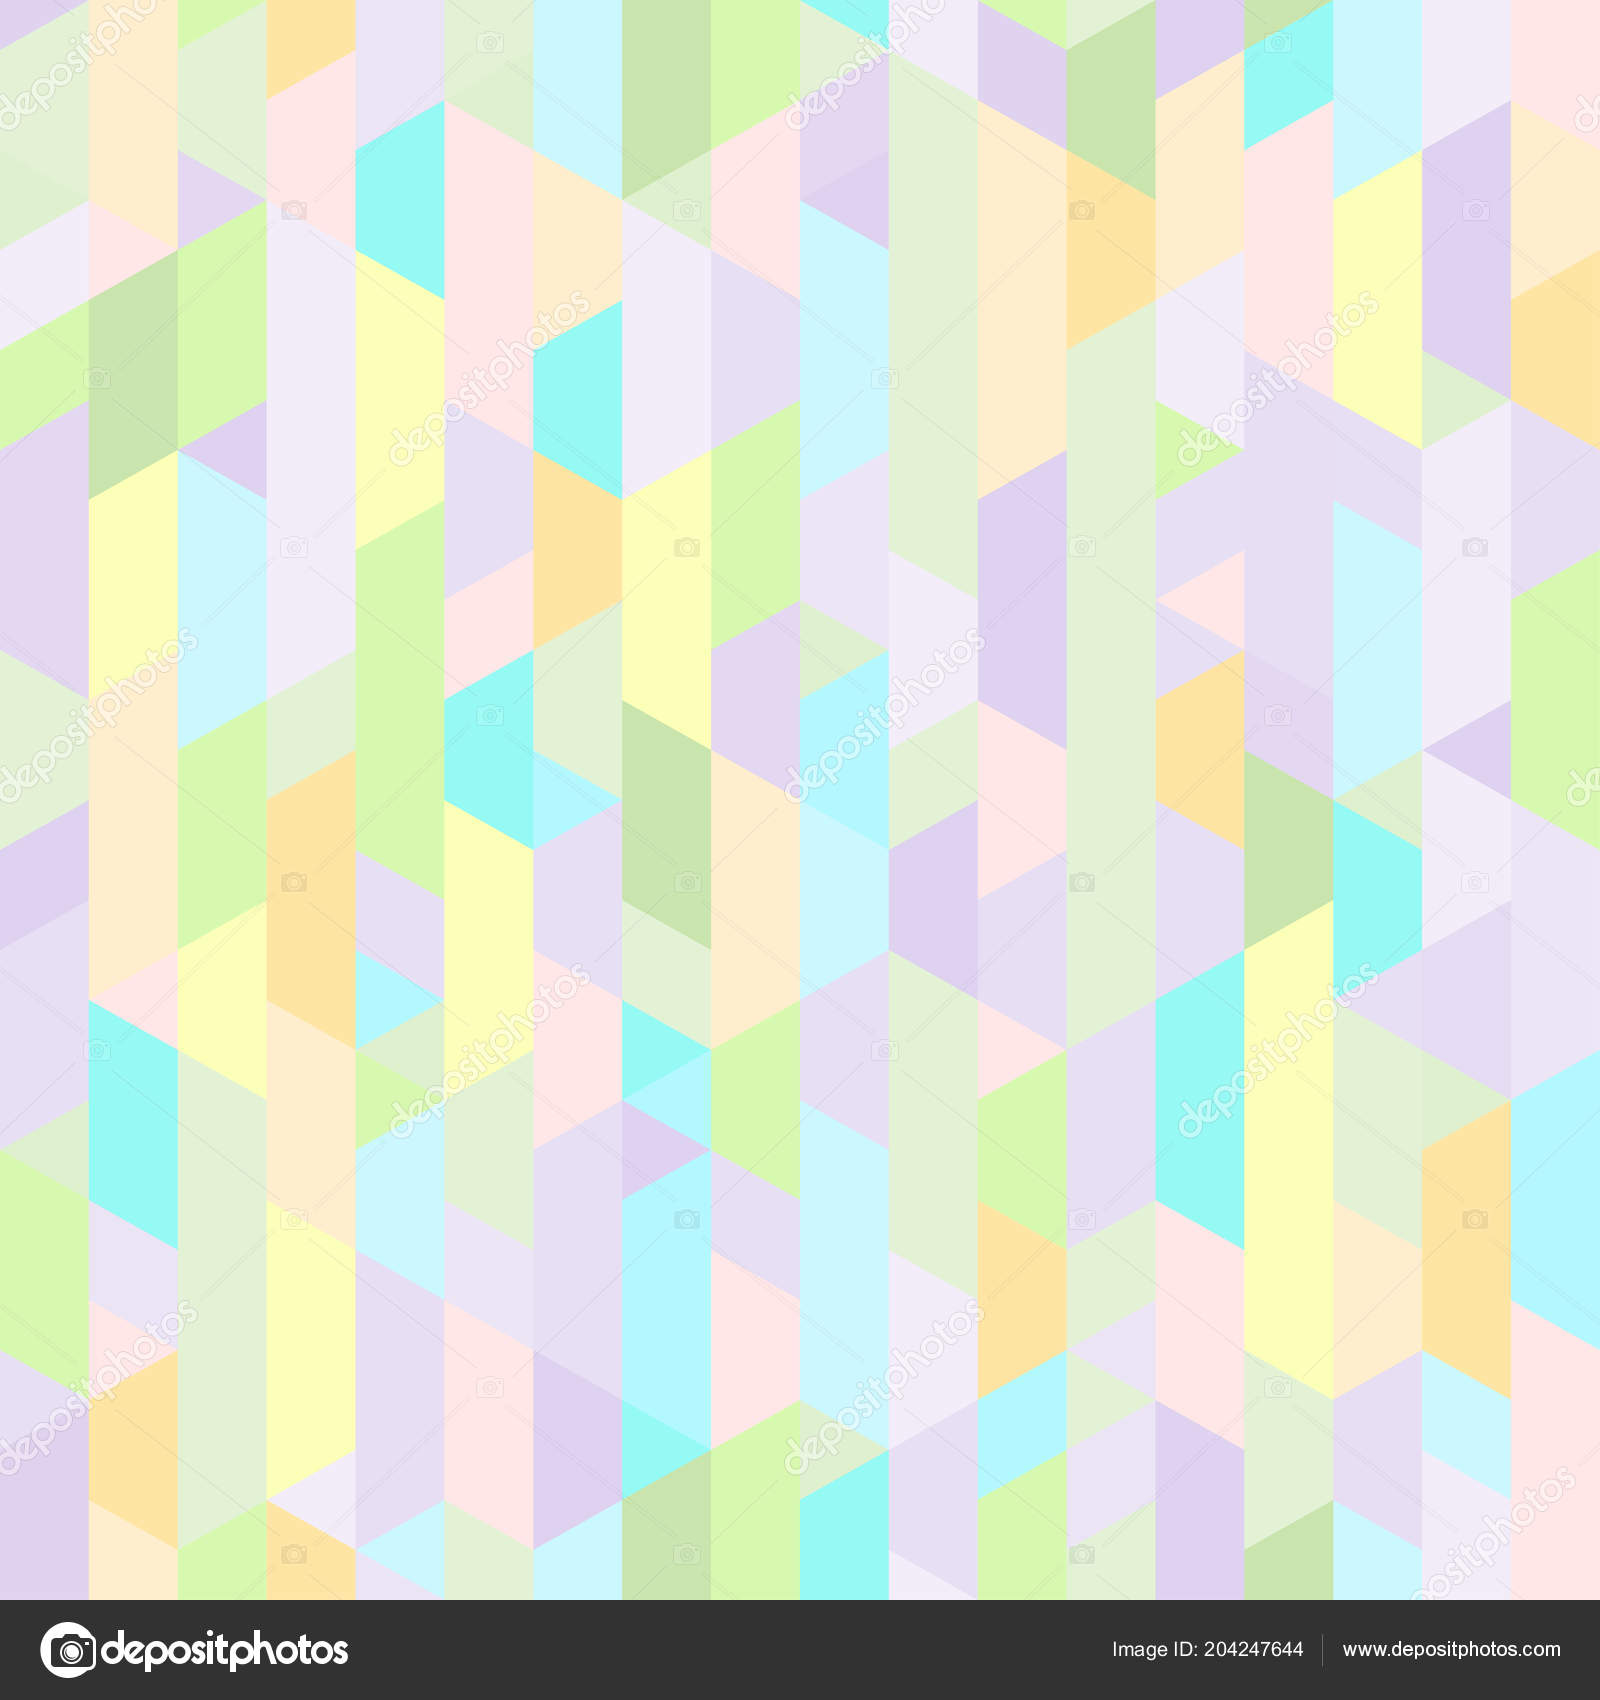 Tile Unique Texture Seamless Pattern Background Polygons